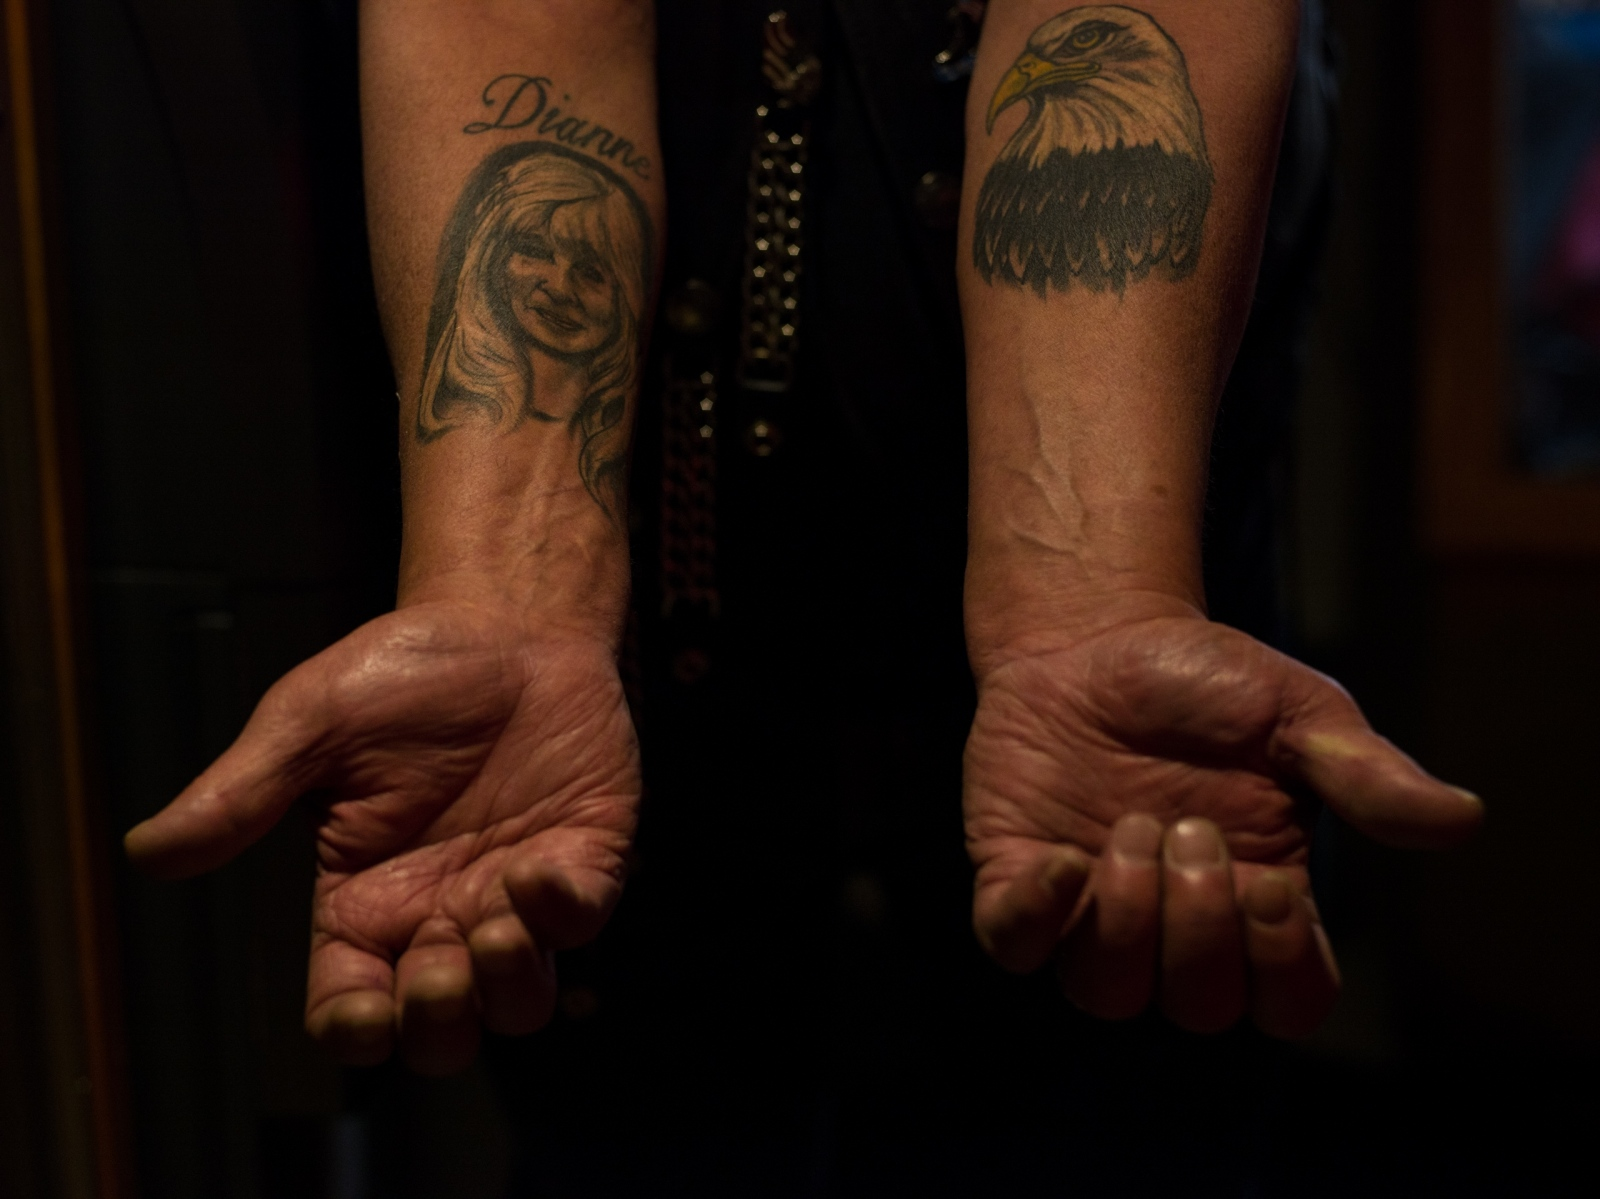 "Richard Crook displays two of his tatoos; his wife of almost 48 years on his right arm, and a bald eagle on his left. Crook, who served in the navy for 6 years, is currently the chaplain for the American Legion Riders in Anchorage, Alaska. He says that the community of friends he sees reguarly, like on nights like tonight at the American Legion Jack Henry Post 1, are like family to him. ""These are the best people you'd ever want to be associated with,"" he says. For the Washington Post."